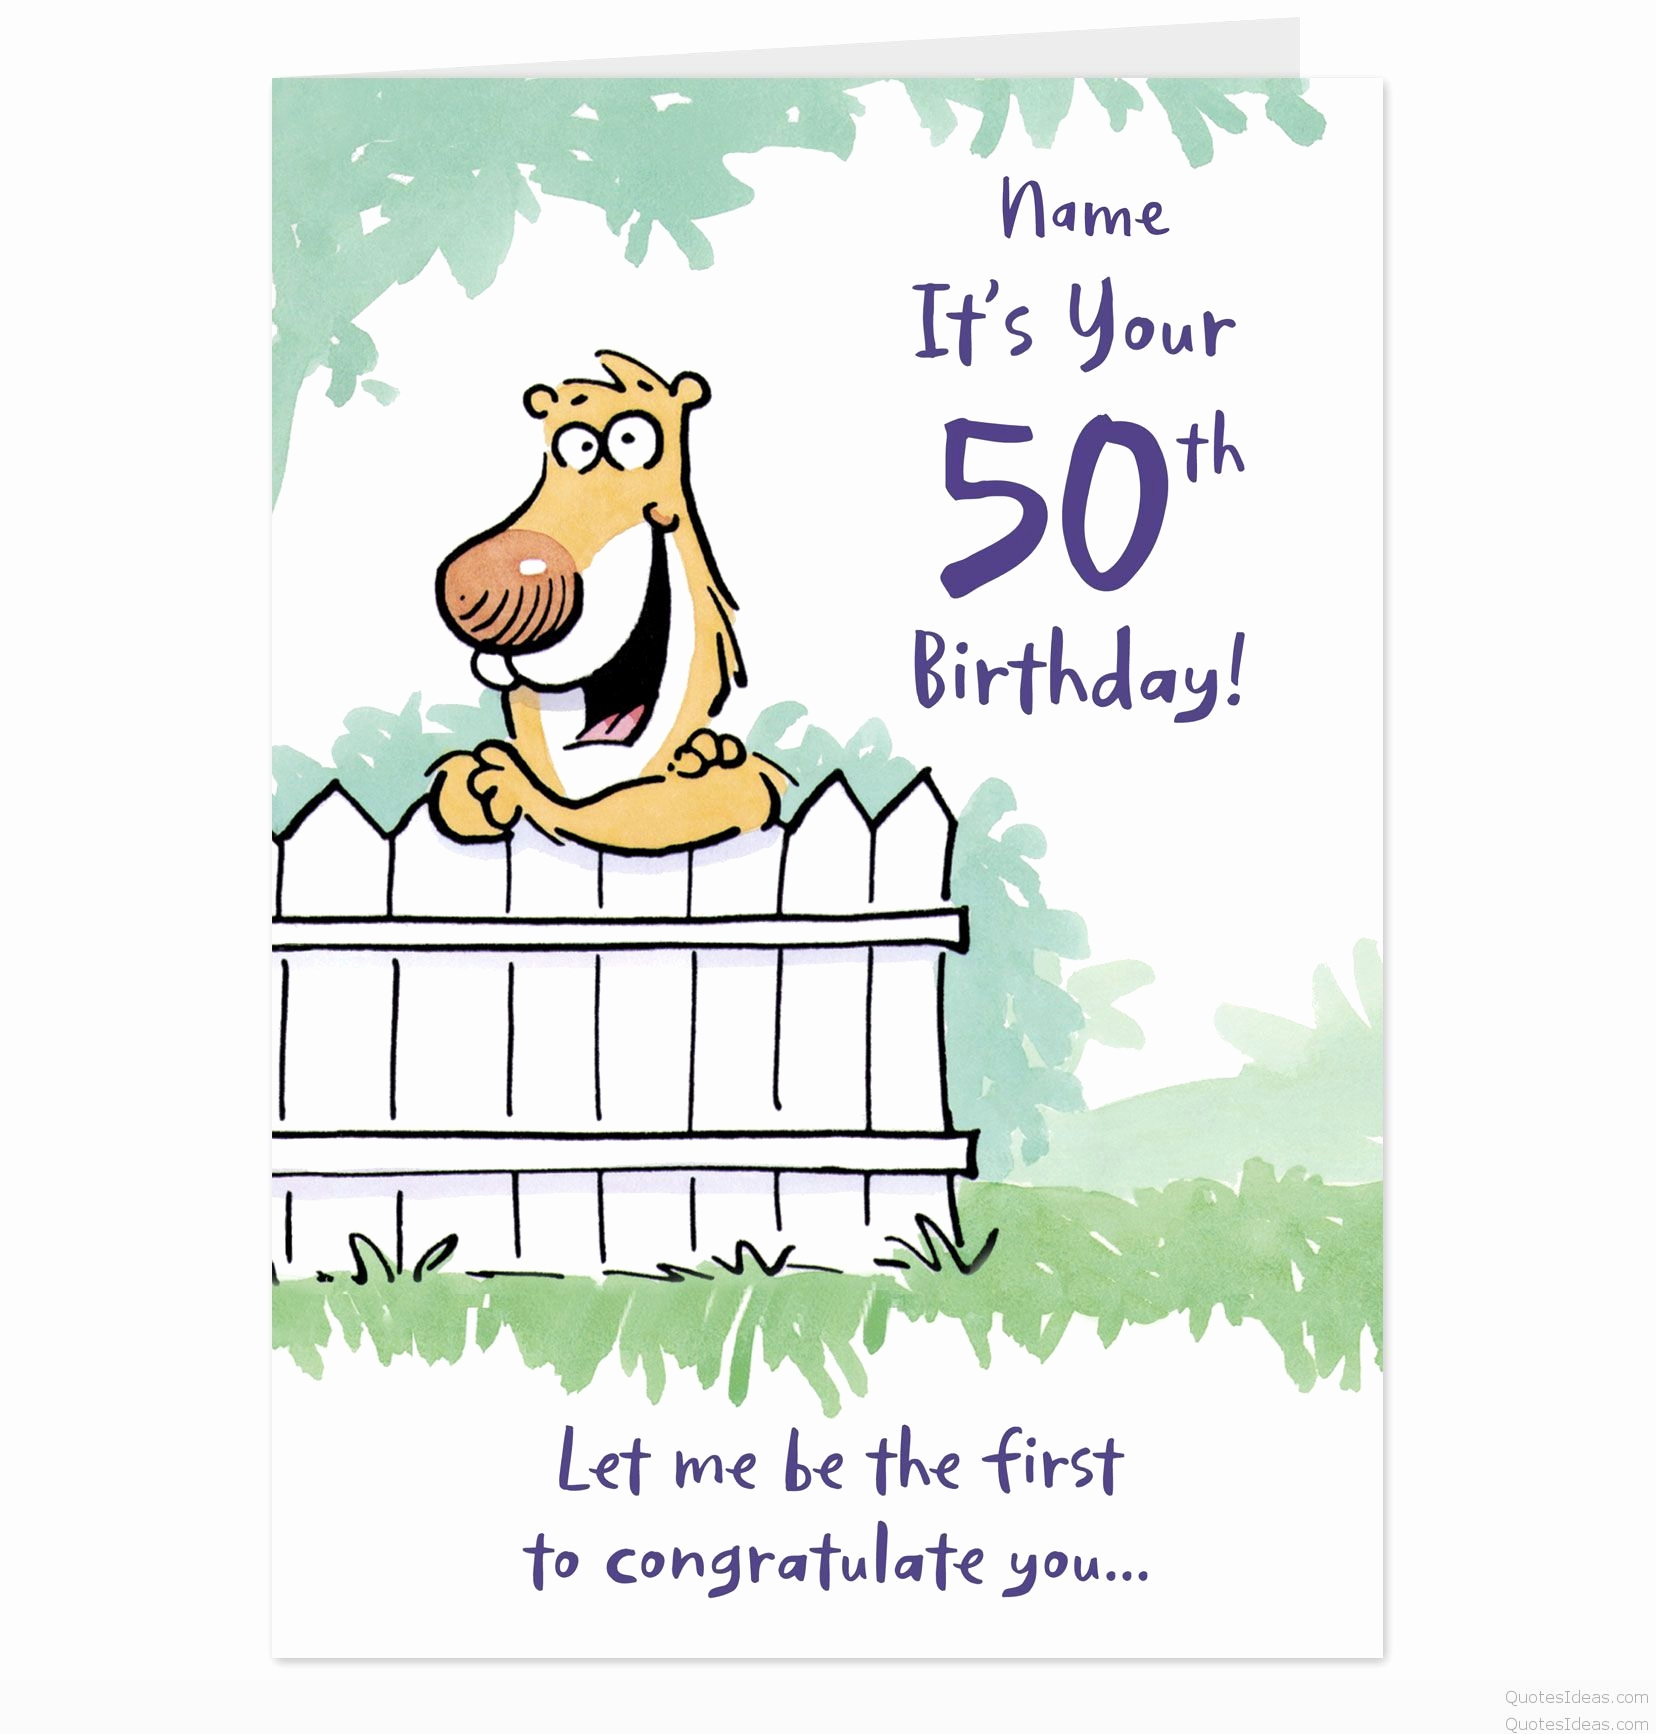 50th birthday card messages funny ; funny-birthday-card-messages-for-boss-beautiful-birthday-card-messages-for-friends-funny-alanarasbach-of-funny-birthday-card-messages-for-boss